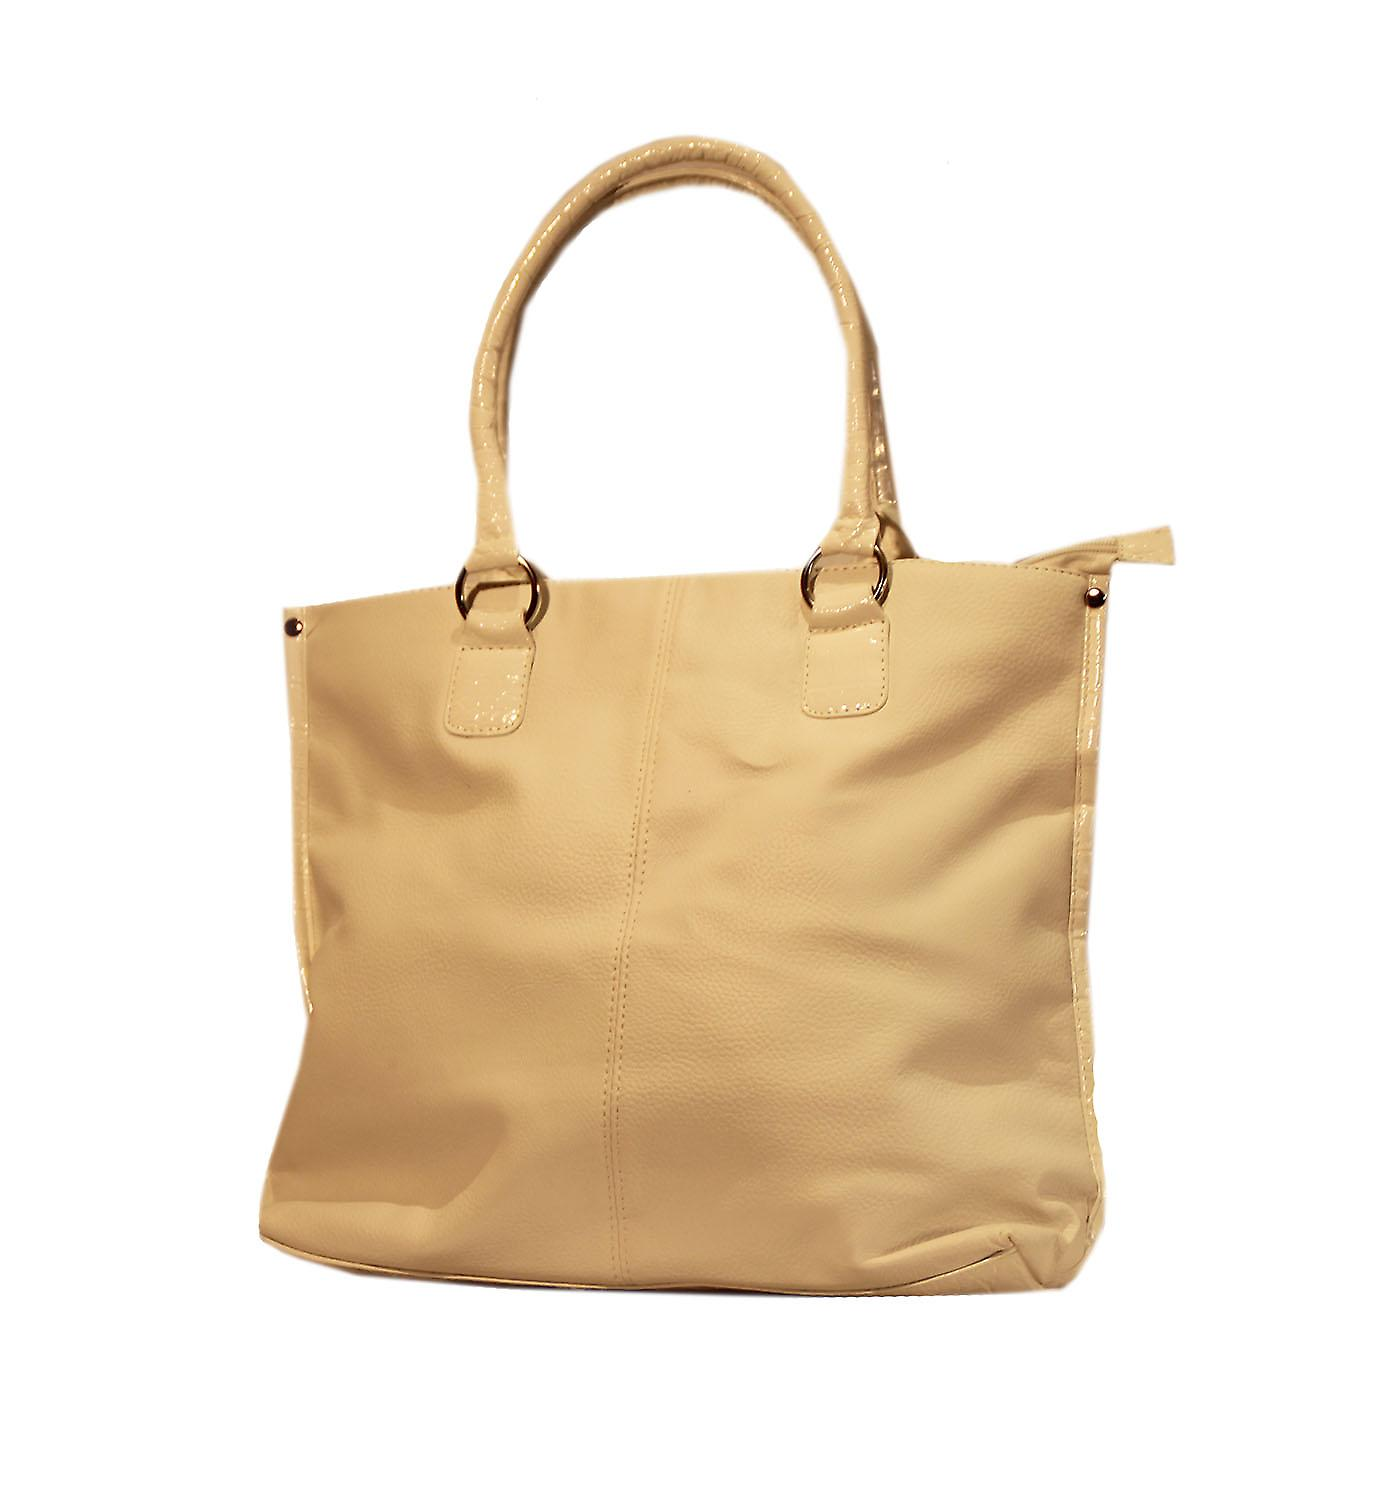 Waooh - Fashion - Effect Leather Handbag Bene